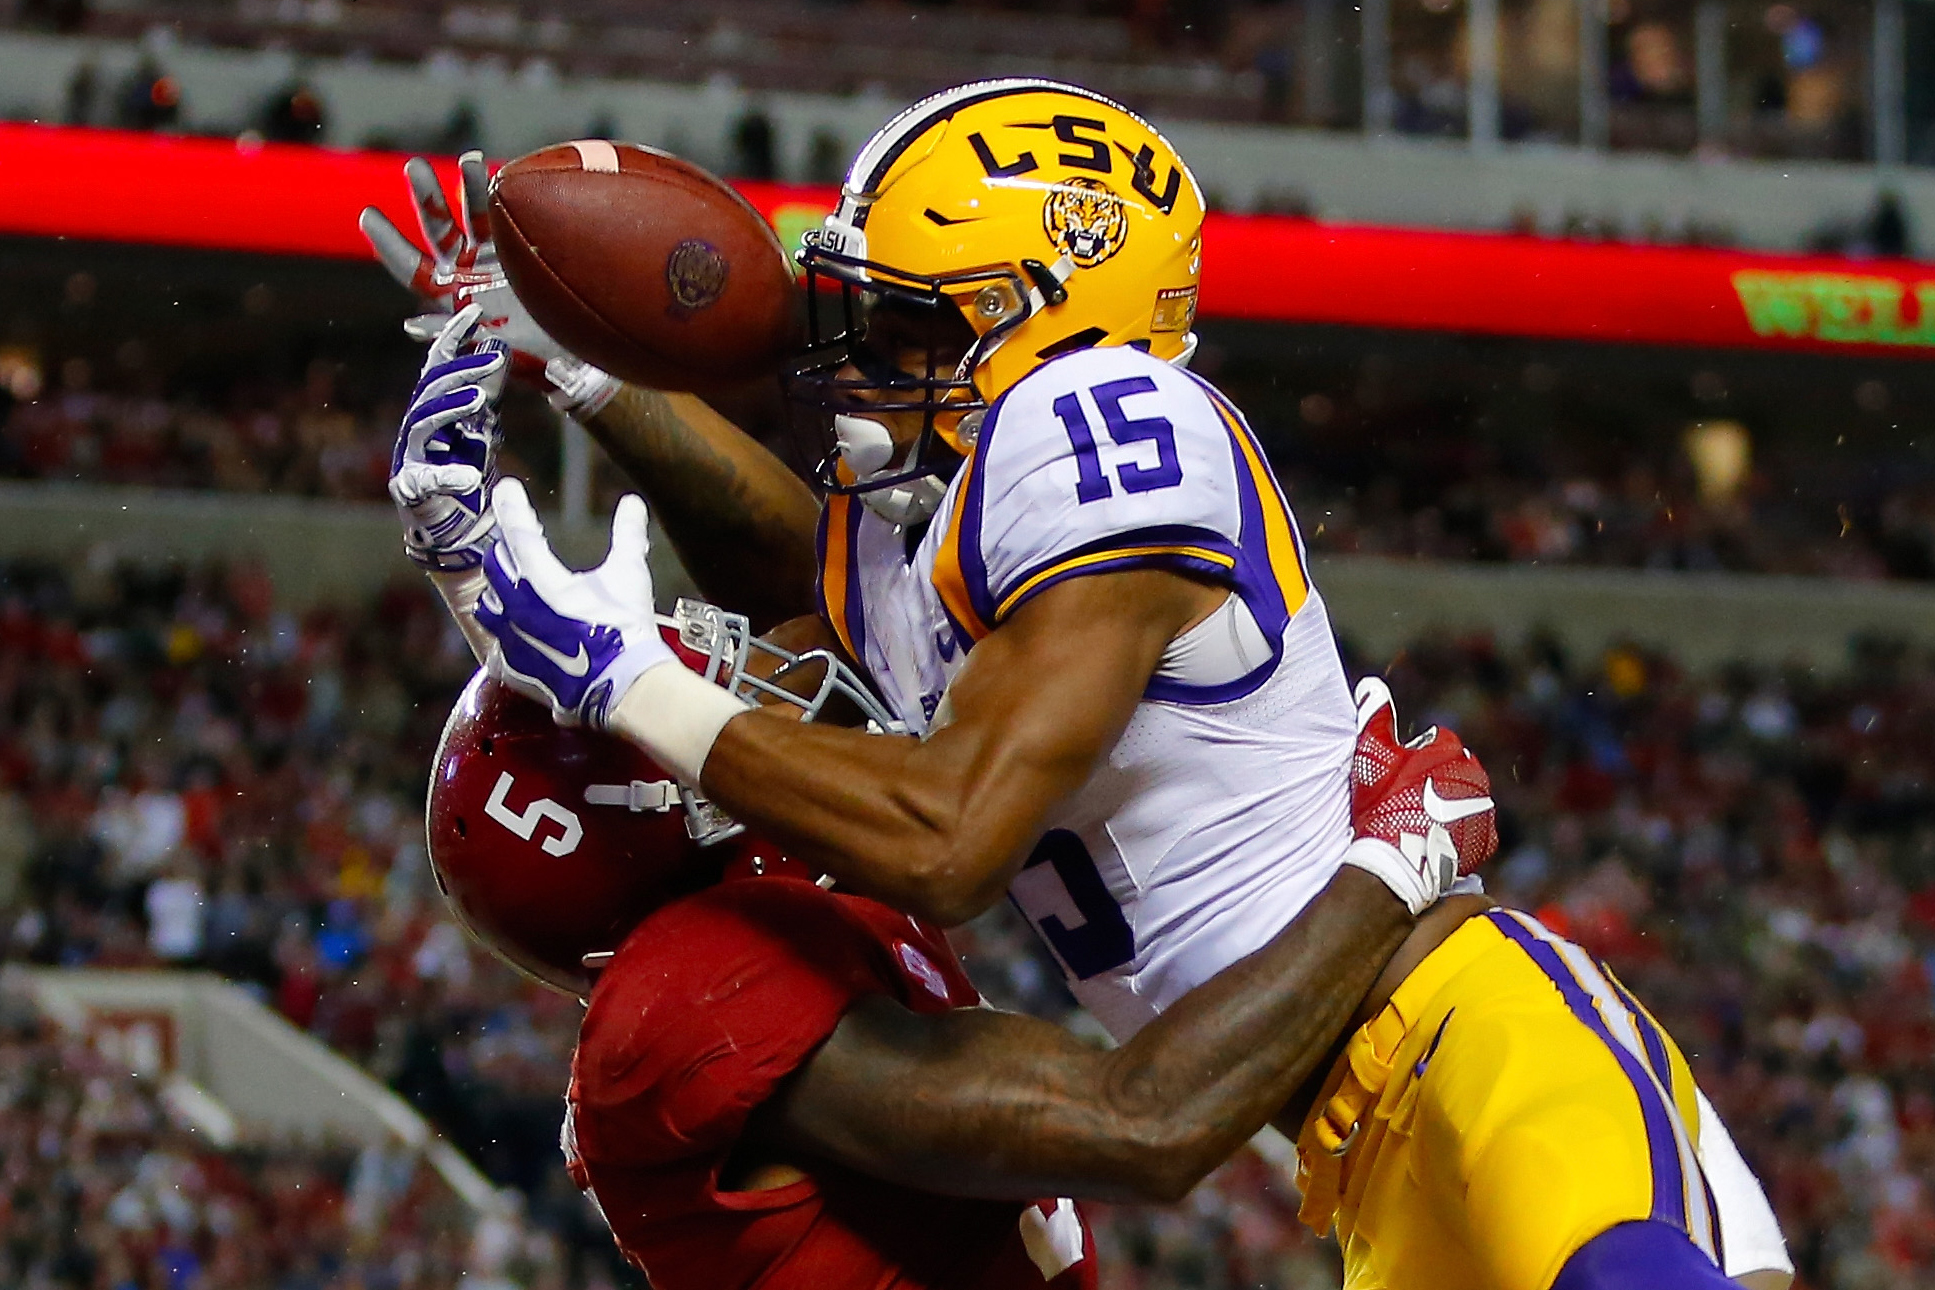 Malachi Dupre #15 of the LSU Tigers misses a touchdown interception due to pass interference on Cyrus Jones #5 of the Alabama Crimson Tide during the fourth quarter at Bryant-Denny Stadium on November 7, 2015 in Tuscaloosa, Alabama.